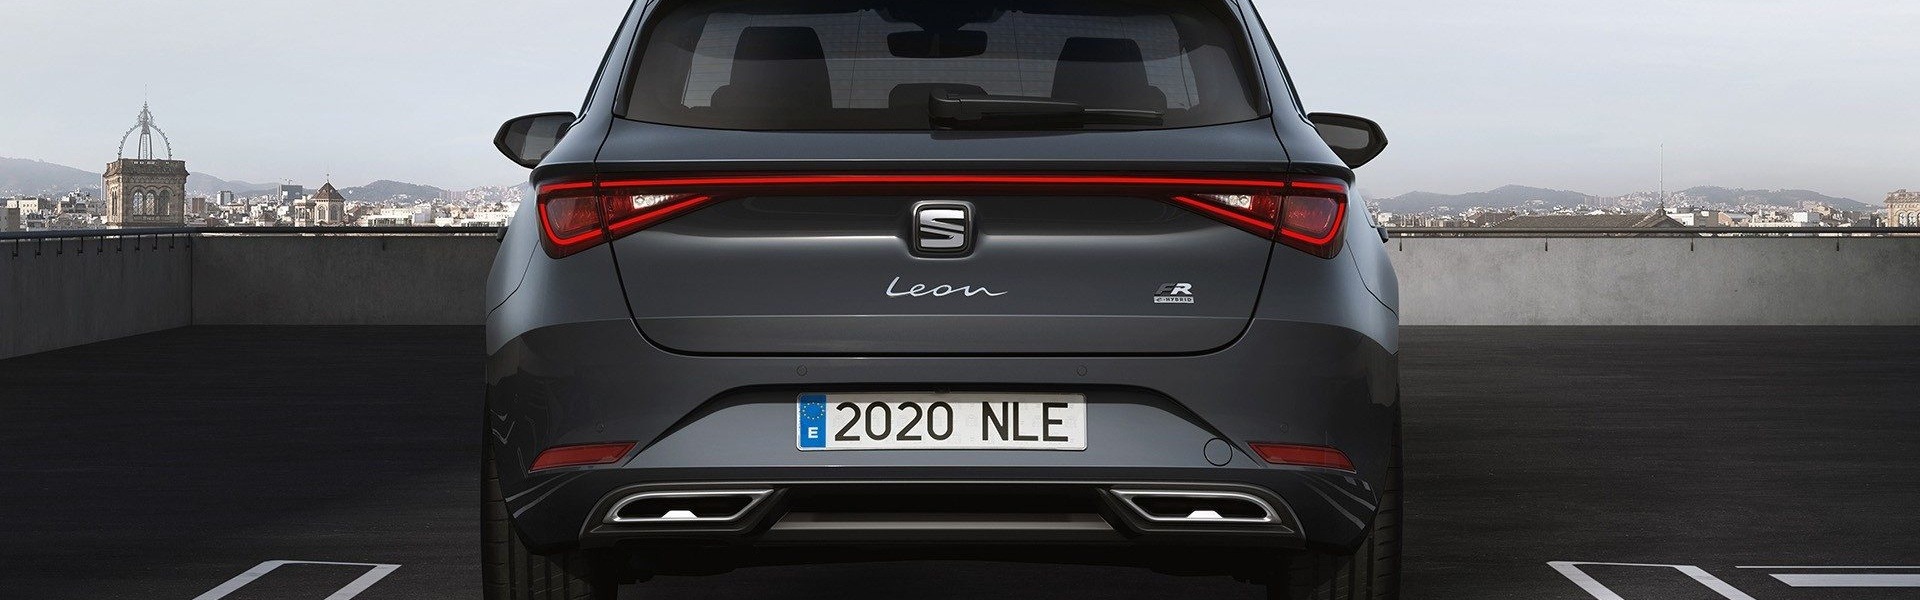 2020-Seat-Leon-Hatch-Estate-15.jpg